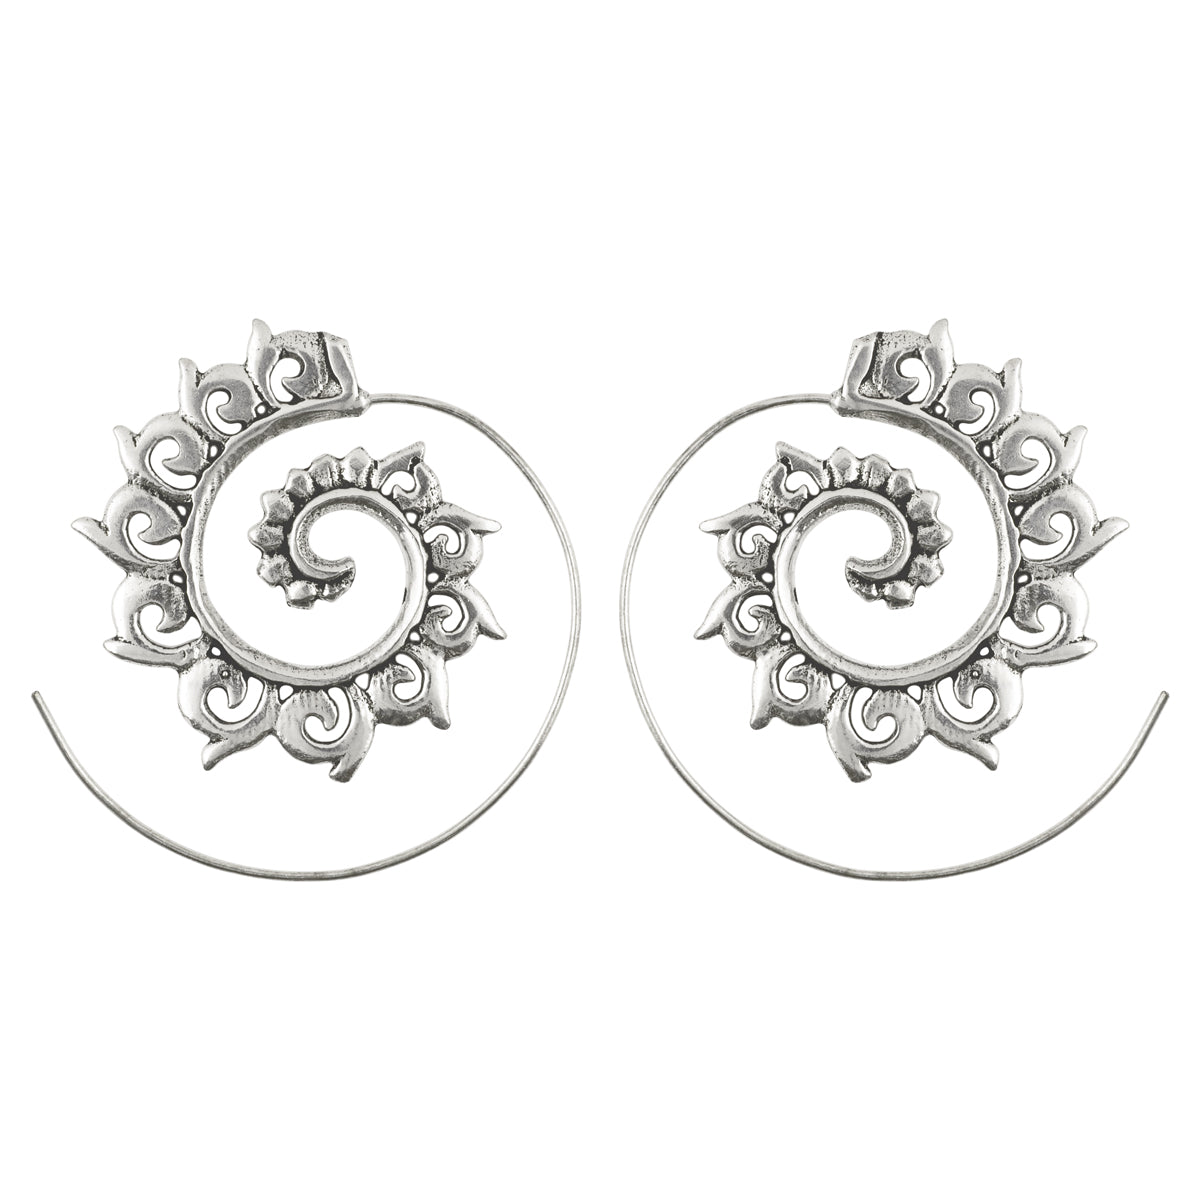 Simple-Brass Ornate Flared Cordate Spiral Earrings-Antique Silver-One Pair